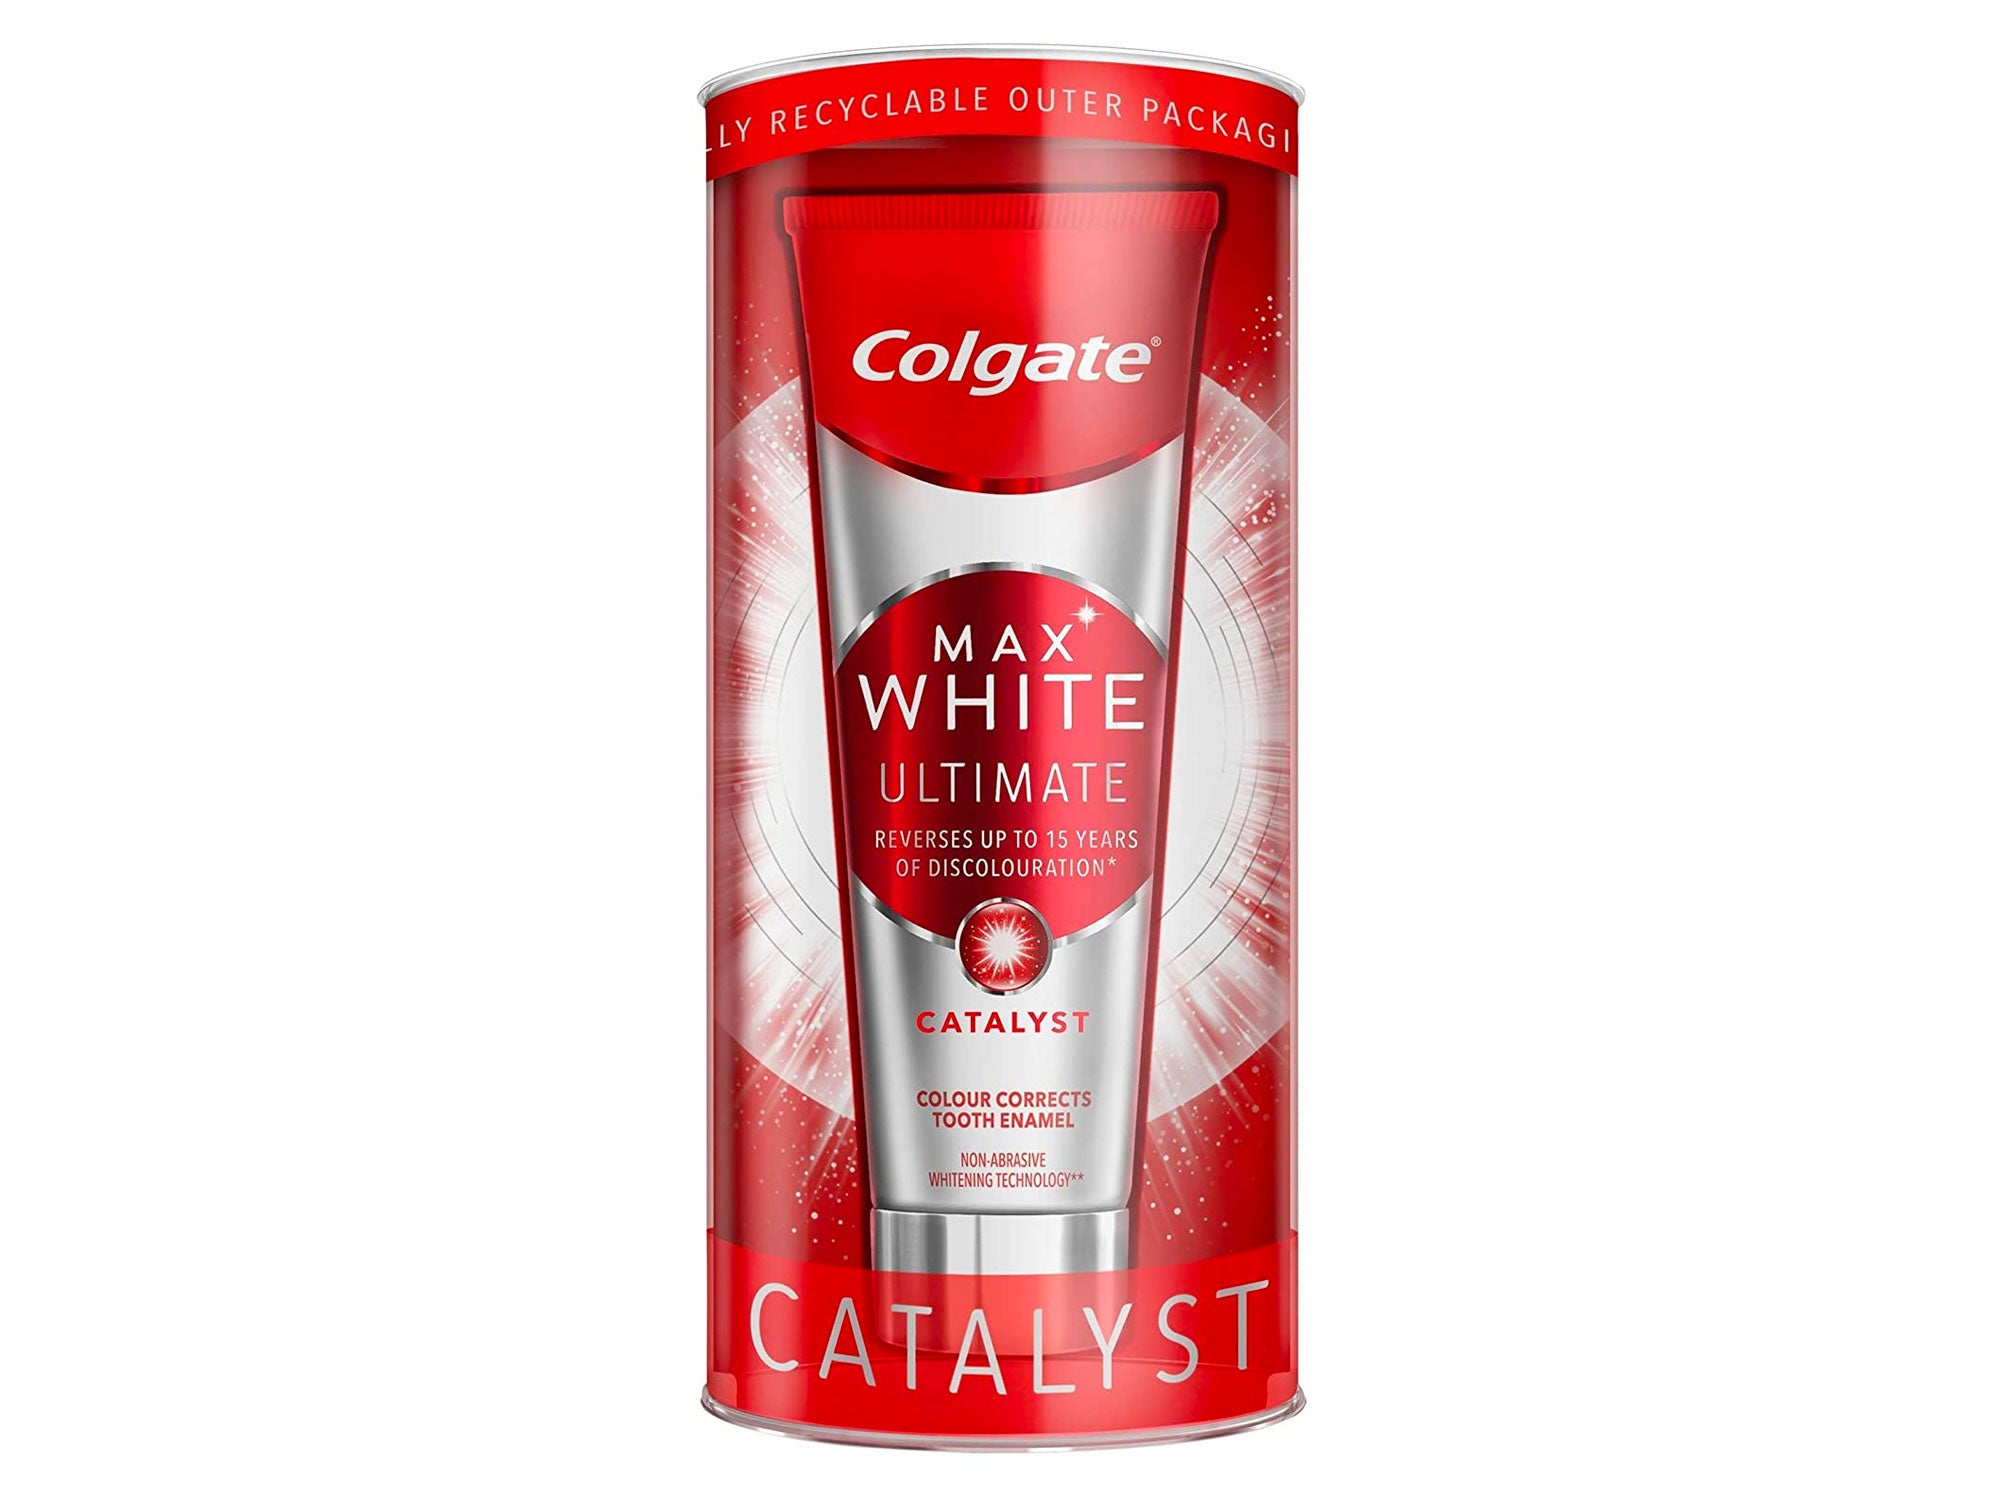 Colgate Max White Ultimate Catalyst Whitening Toothpaste